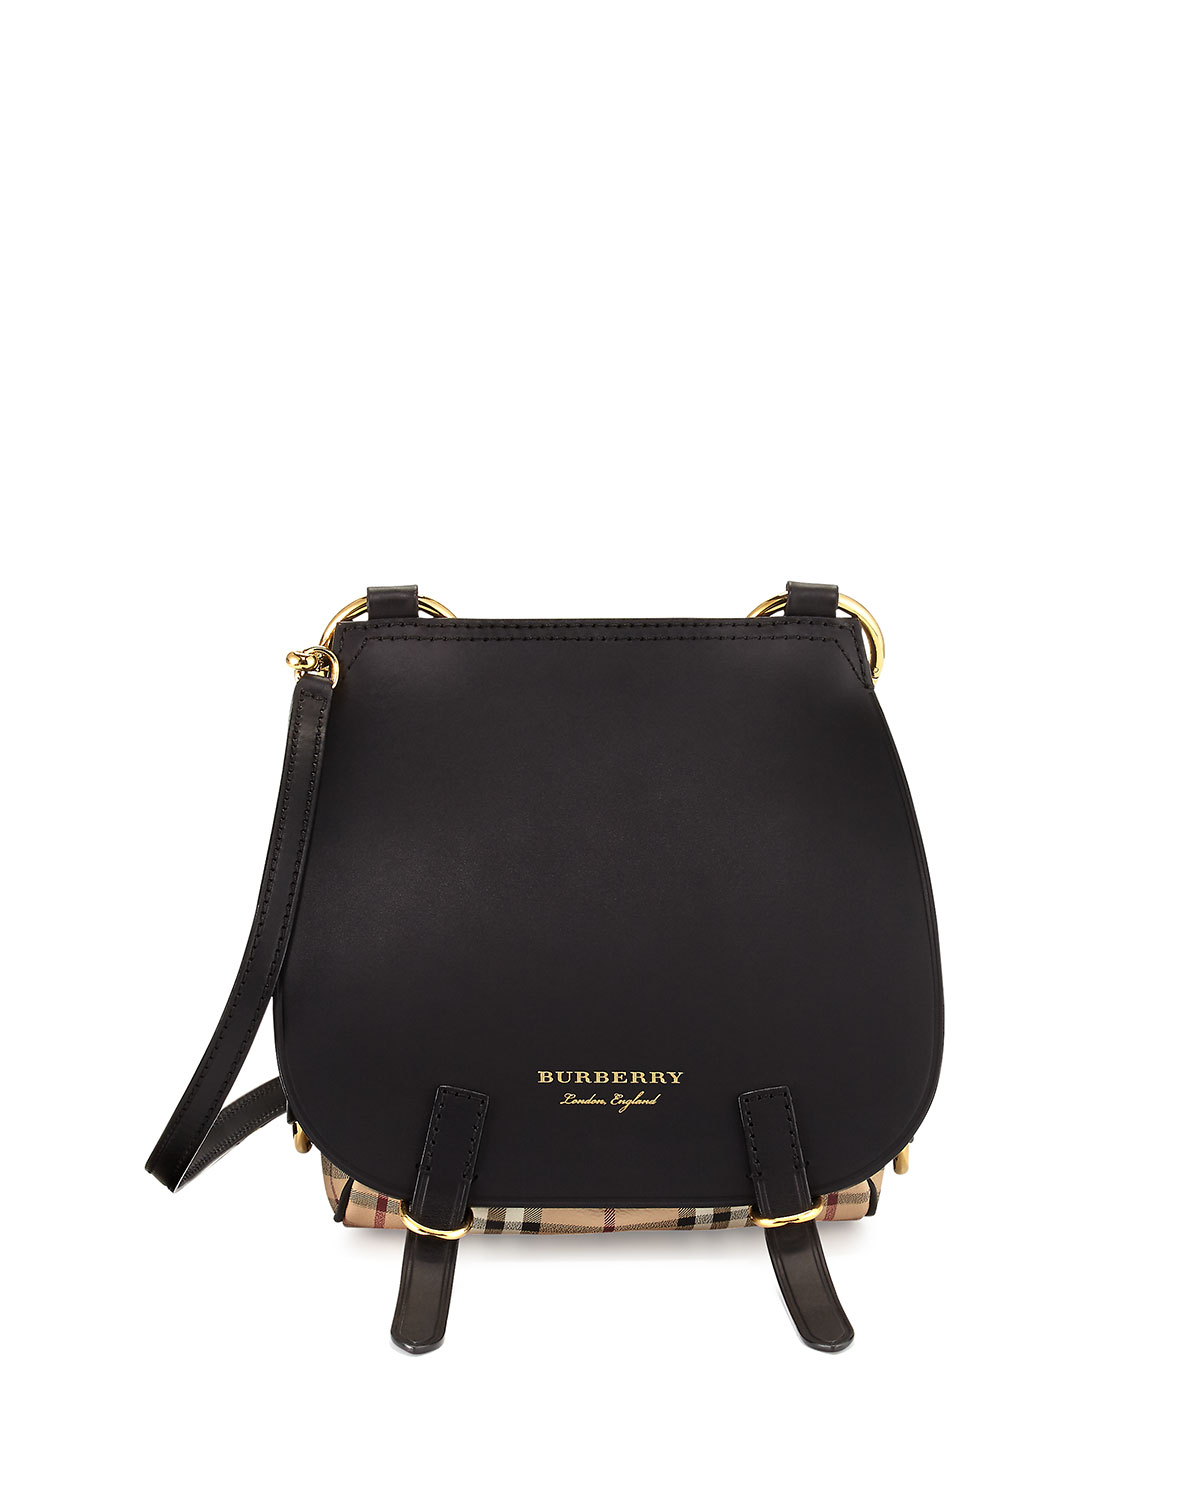 06543be9e0b7 Burberry Bridle Leather and Haymarket Check Shoulder Bag